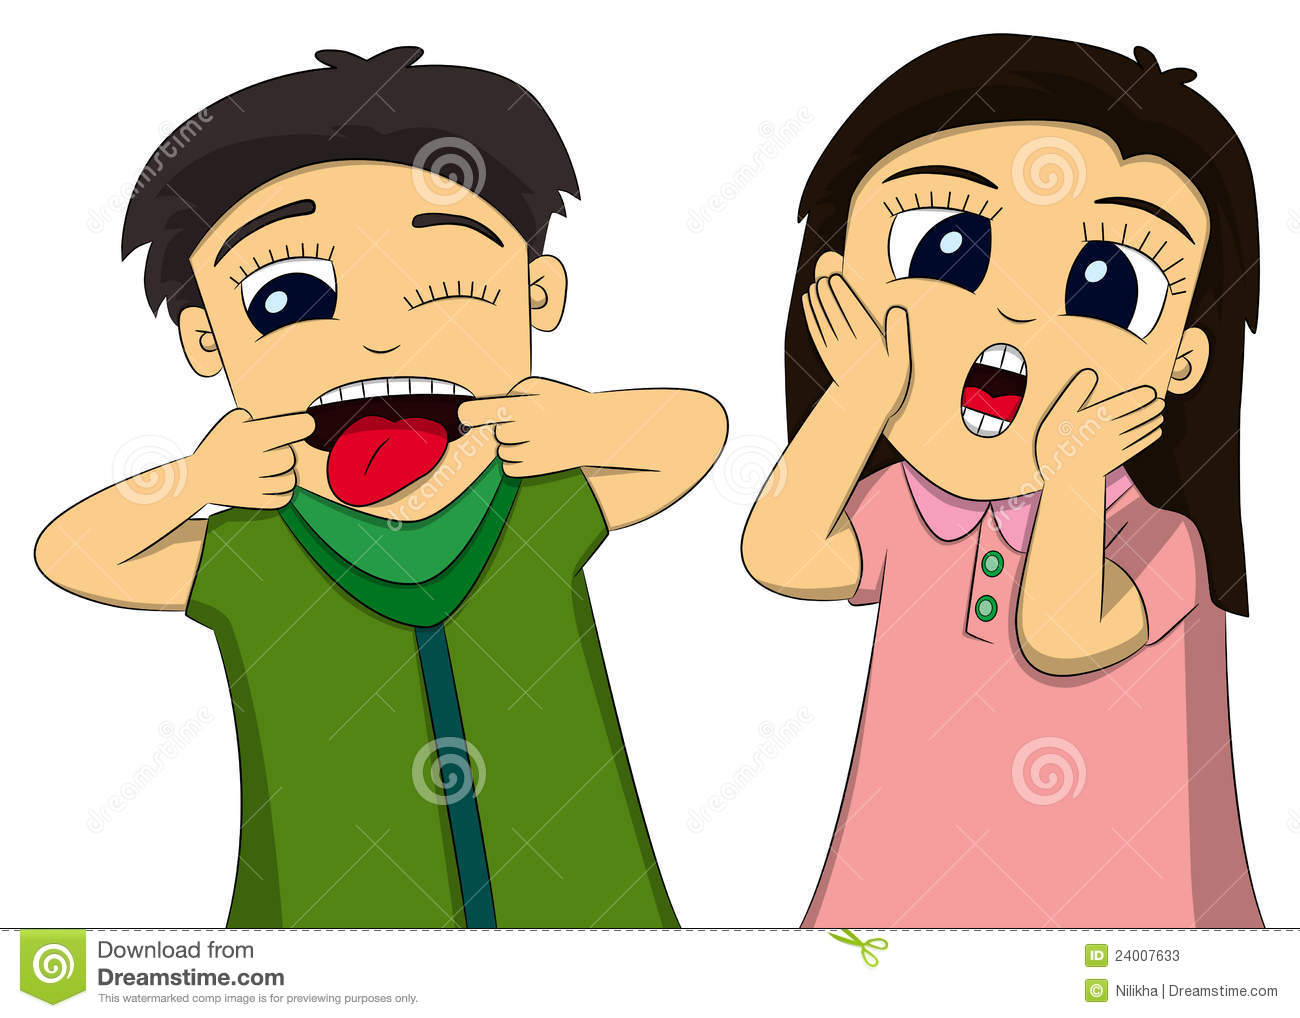 Kids funny face clipart.